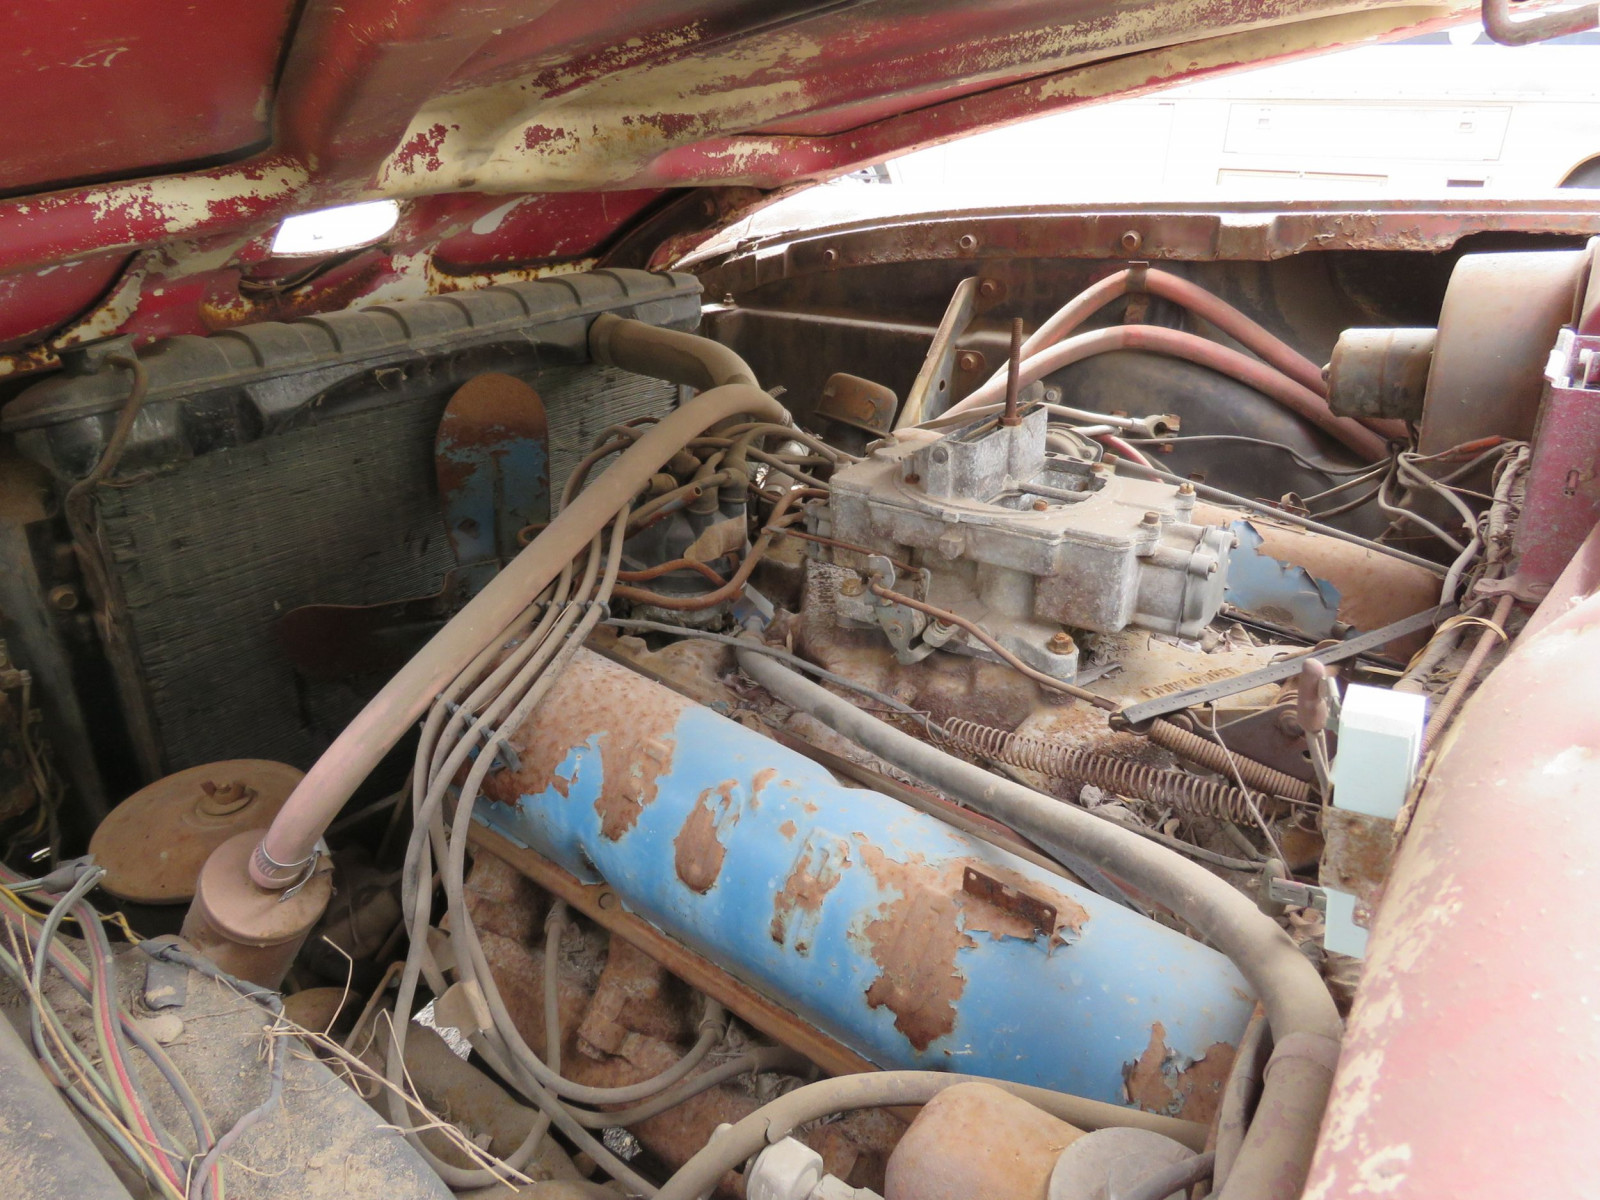 1958 ford fairlane 500 retractable hardtop project - image 8